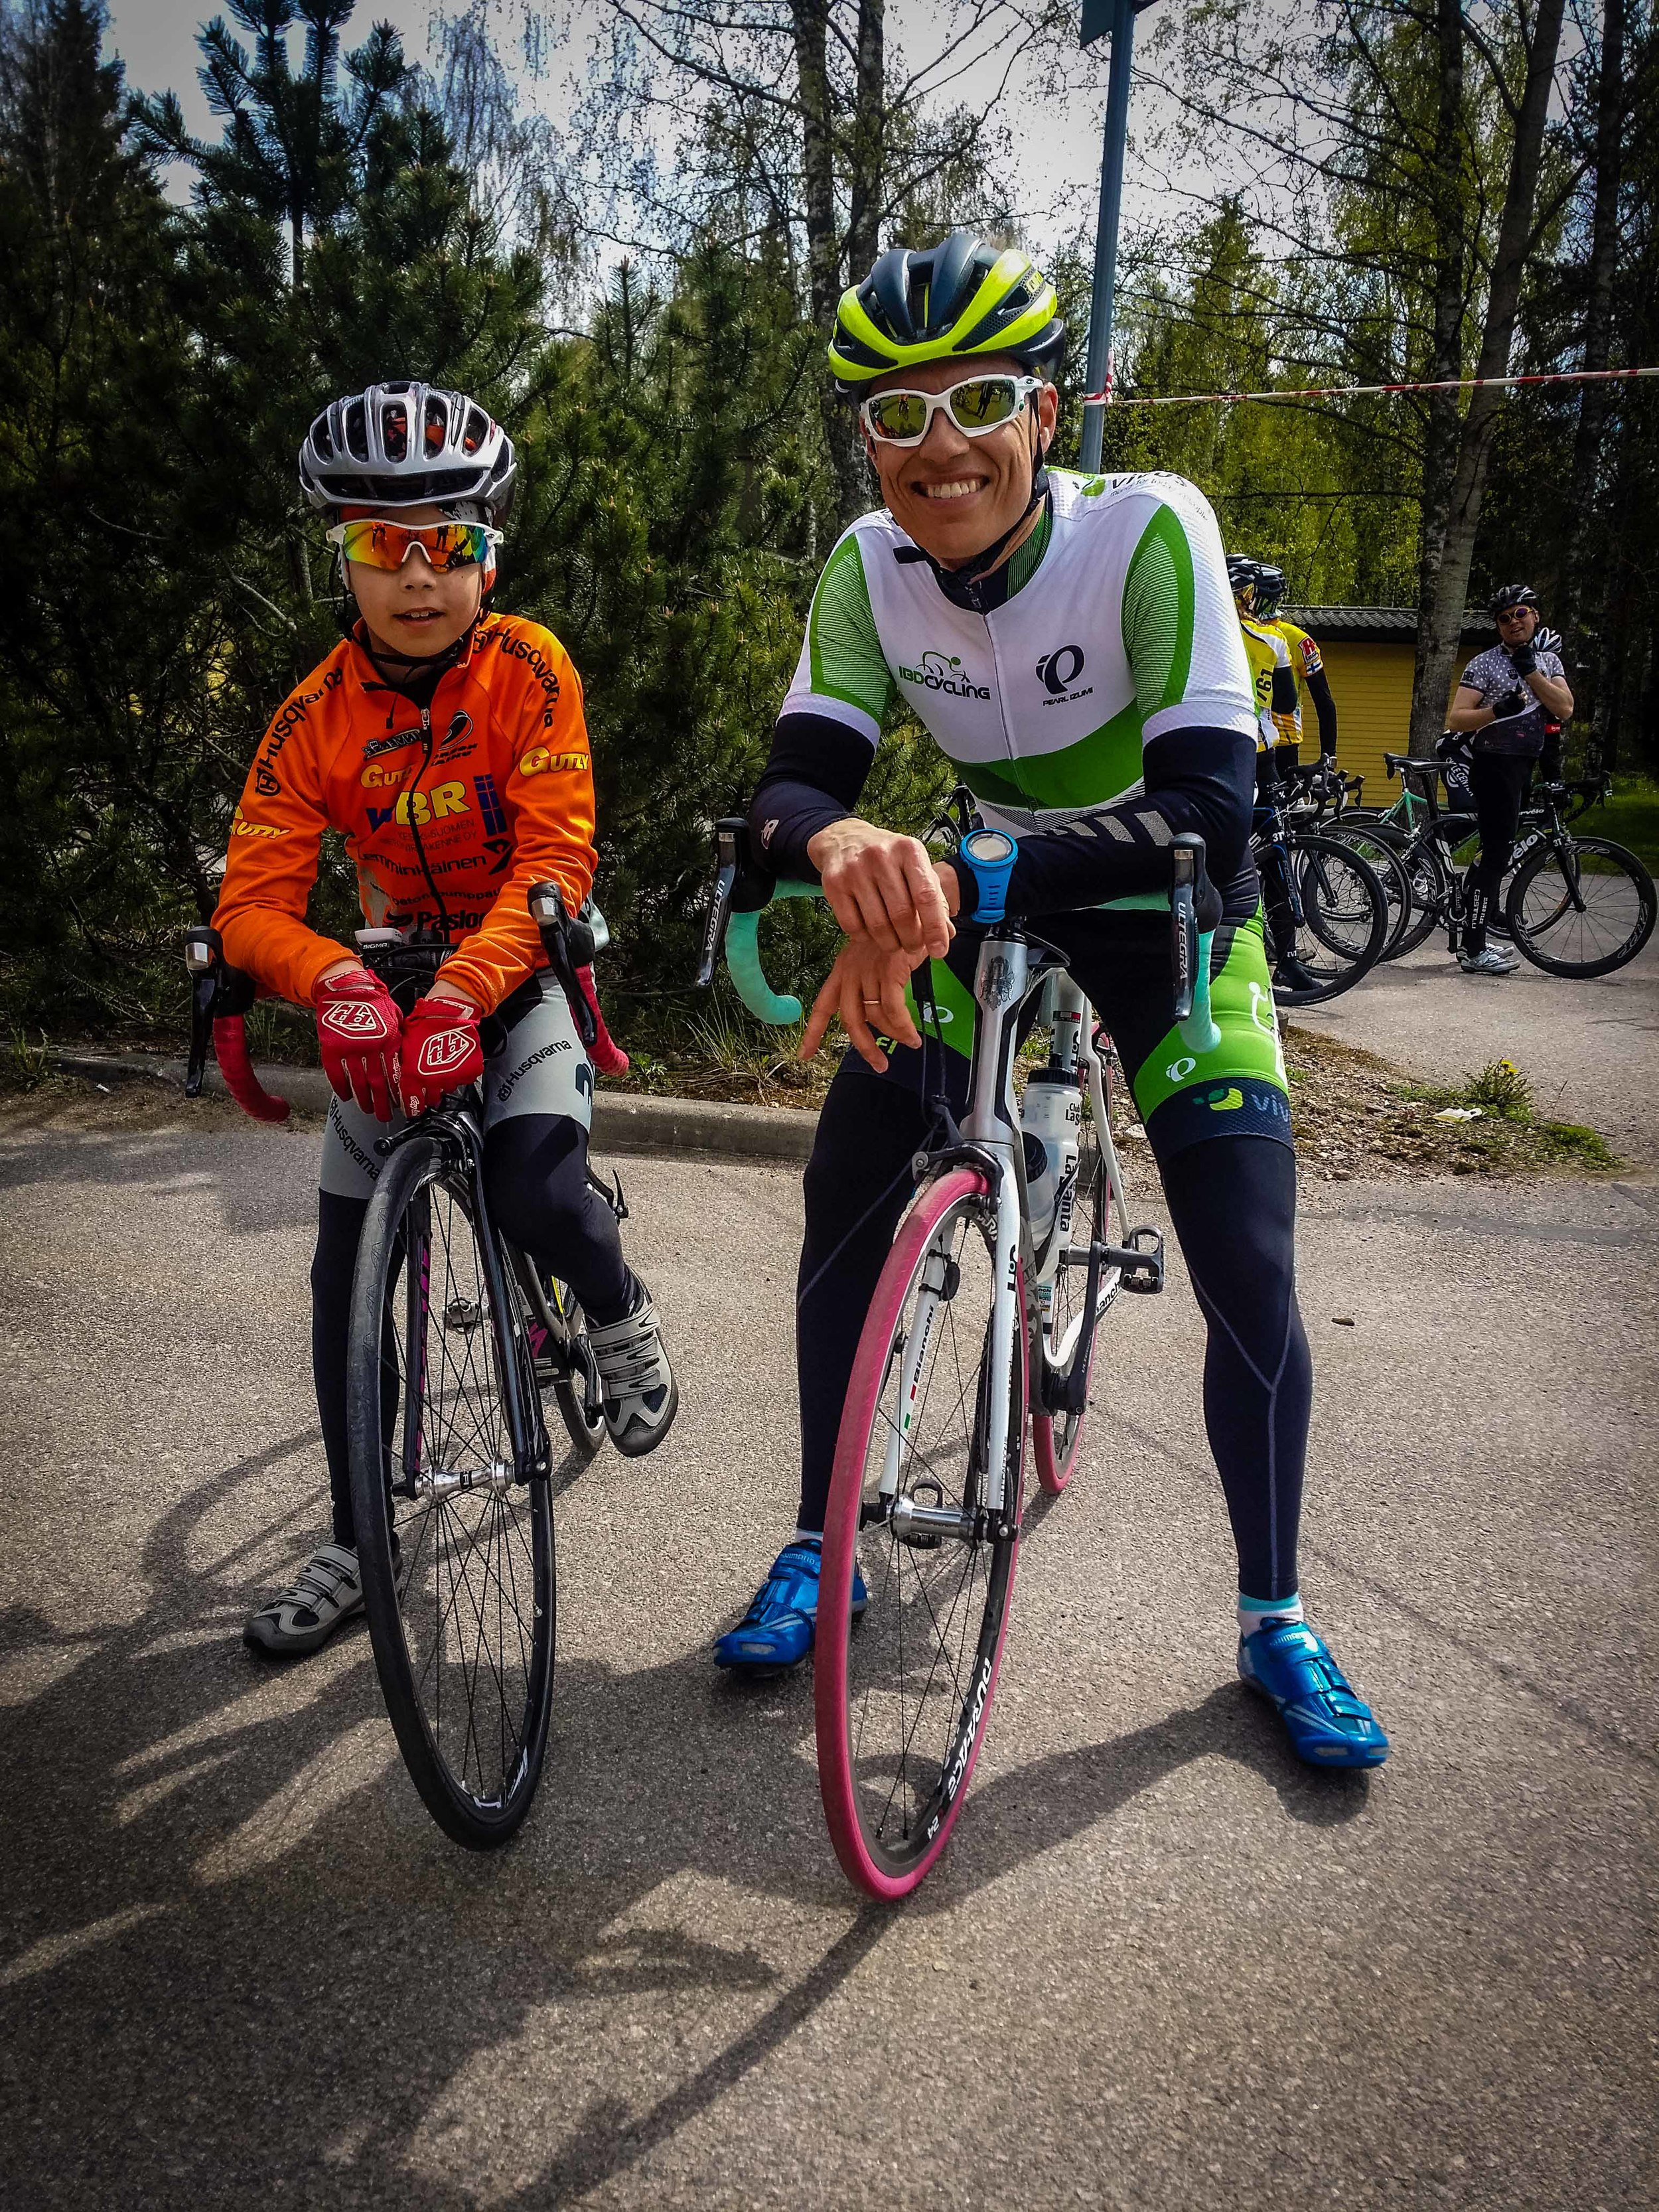 Alexander Stubb together with the next generation of cyclists just after the finish